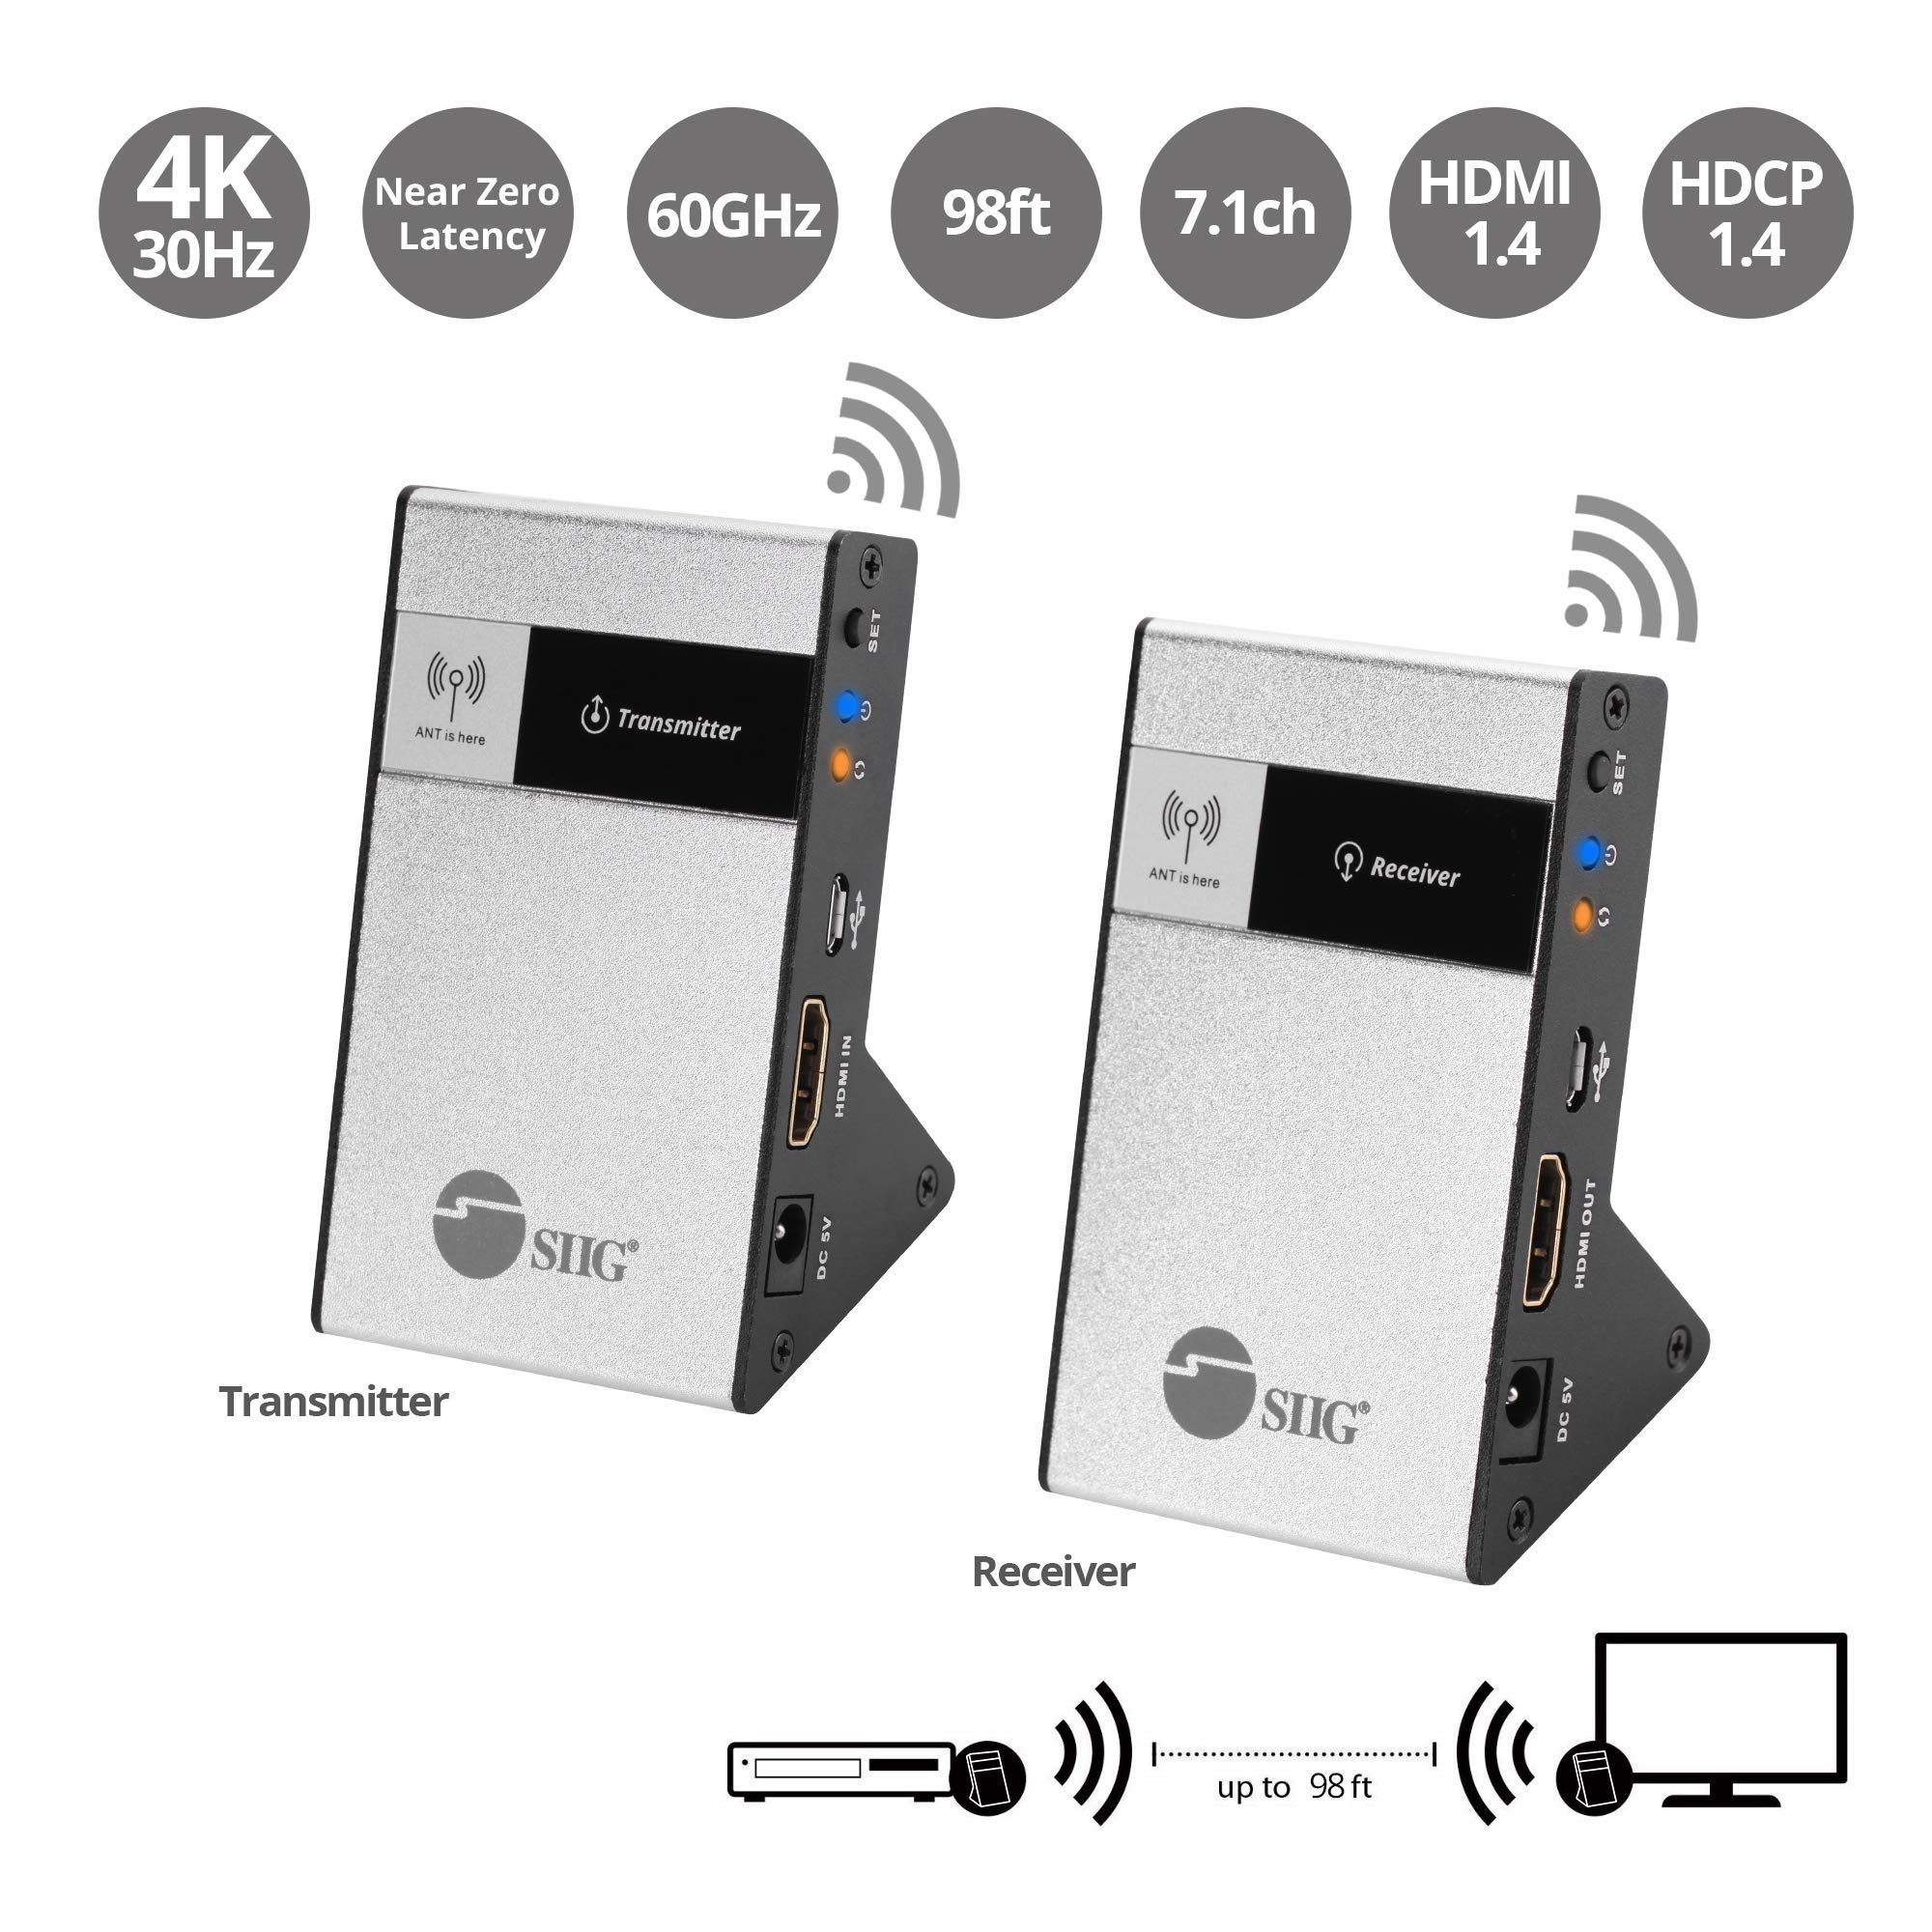 SIIG CE-H23Q11-S1 Wireless HDMI Extender Kit 98Ft 30M Supporting 4K @30Hz HDCP 1.4 CEC 60GHz Frequency-Transmitter and Receiver, Black by SIIG